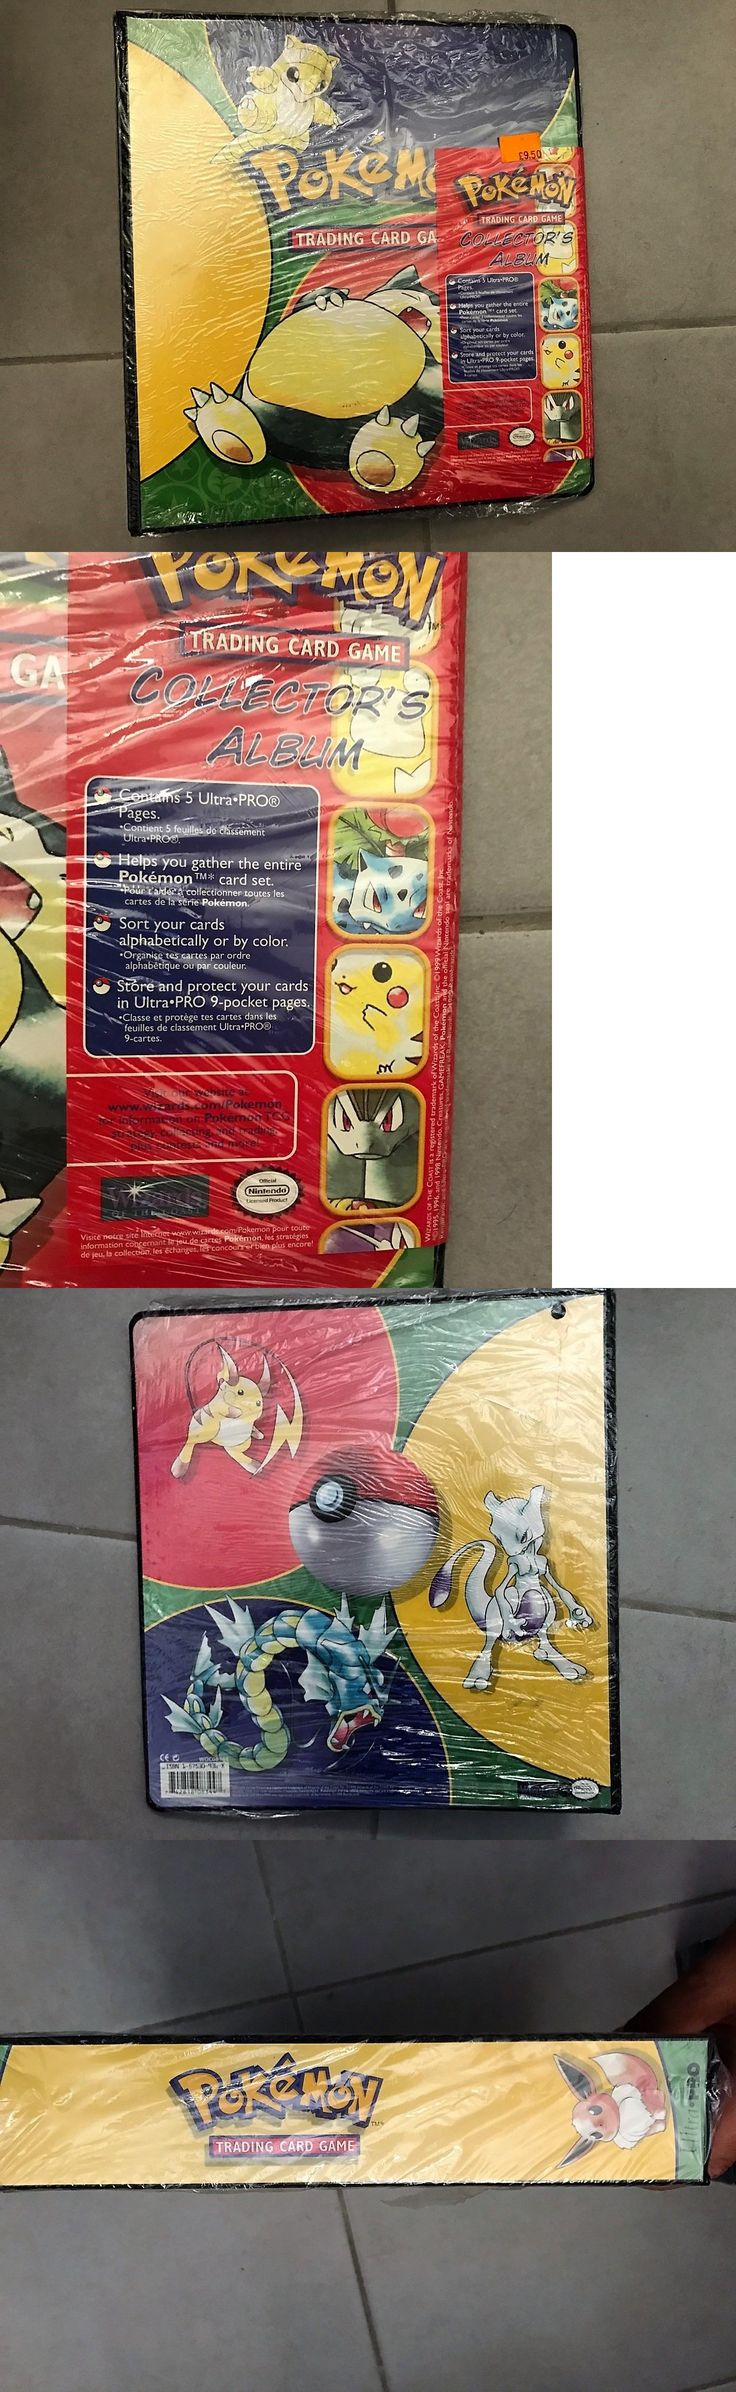 Other Pok mon TCG Items 2608: Rare !!! 1999 Vintage Pokemon Trading Card Game Binder - Factory Sealed Nintendo -> BUY IT NOW ONLY: $39 on eBay!